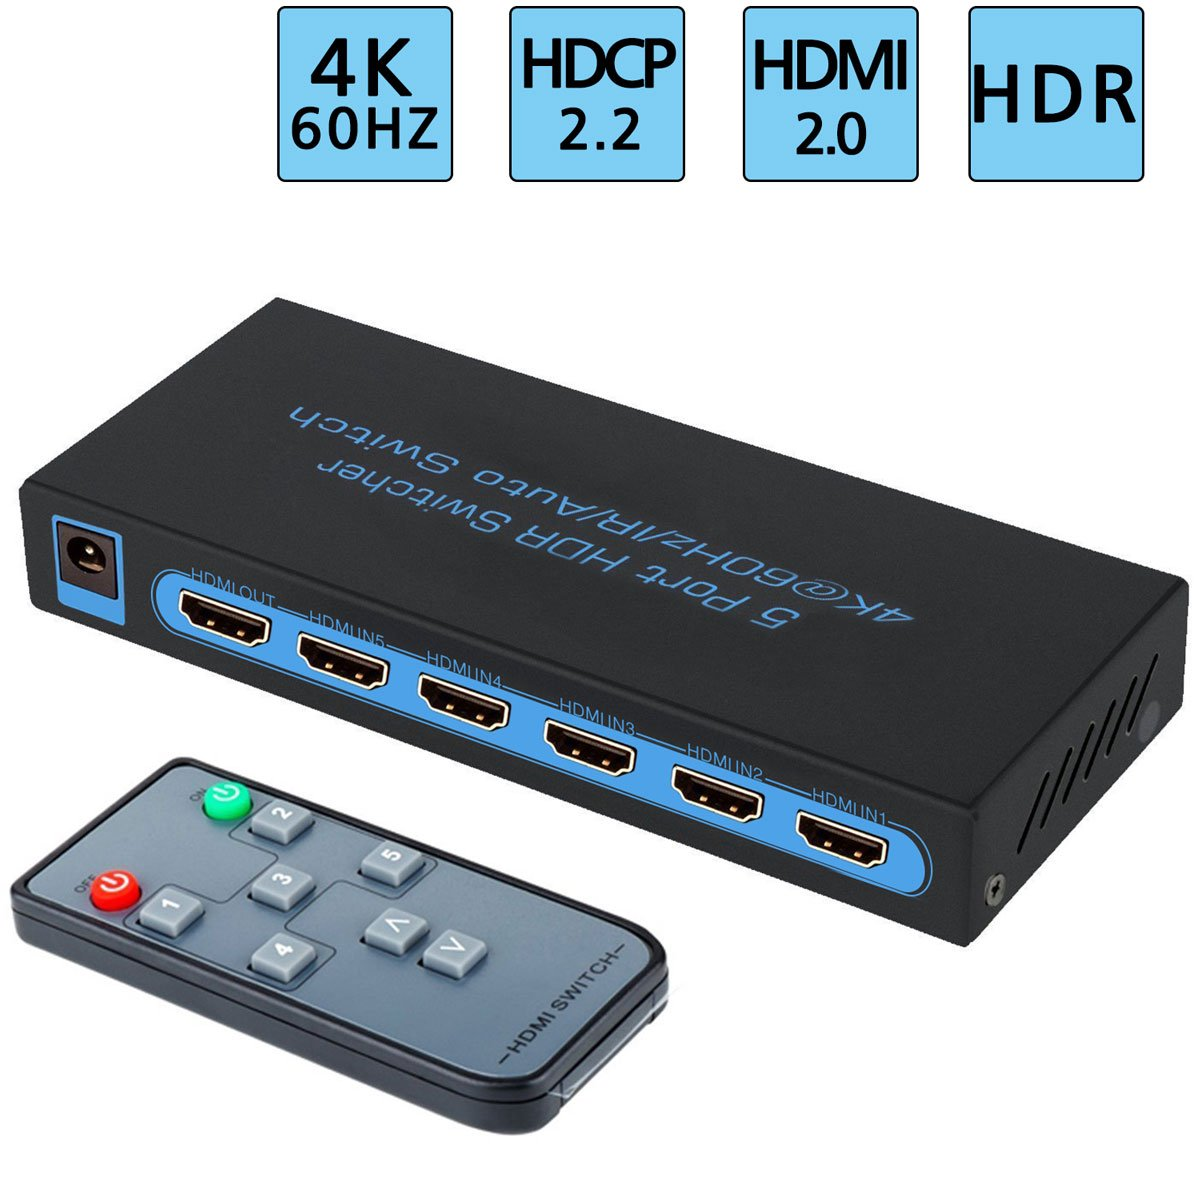 Amazon.com: 4K@60Hz HDMI Switch 5x1,FiveHome 5 Port HDMI Switcher